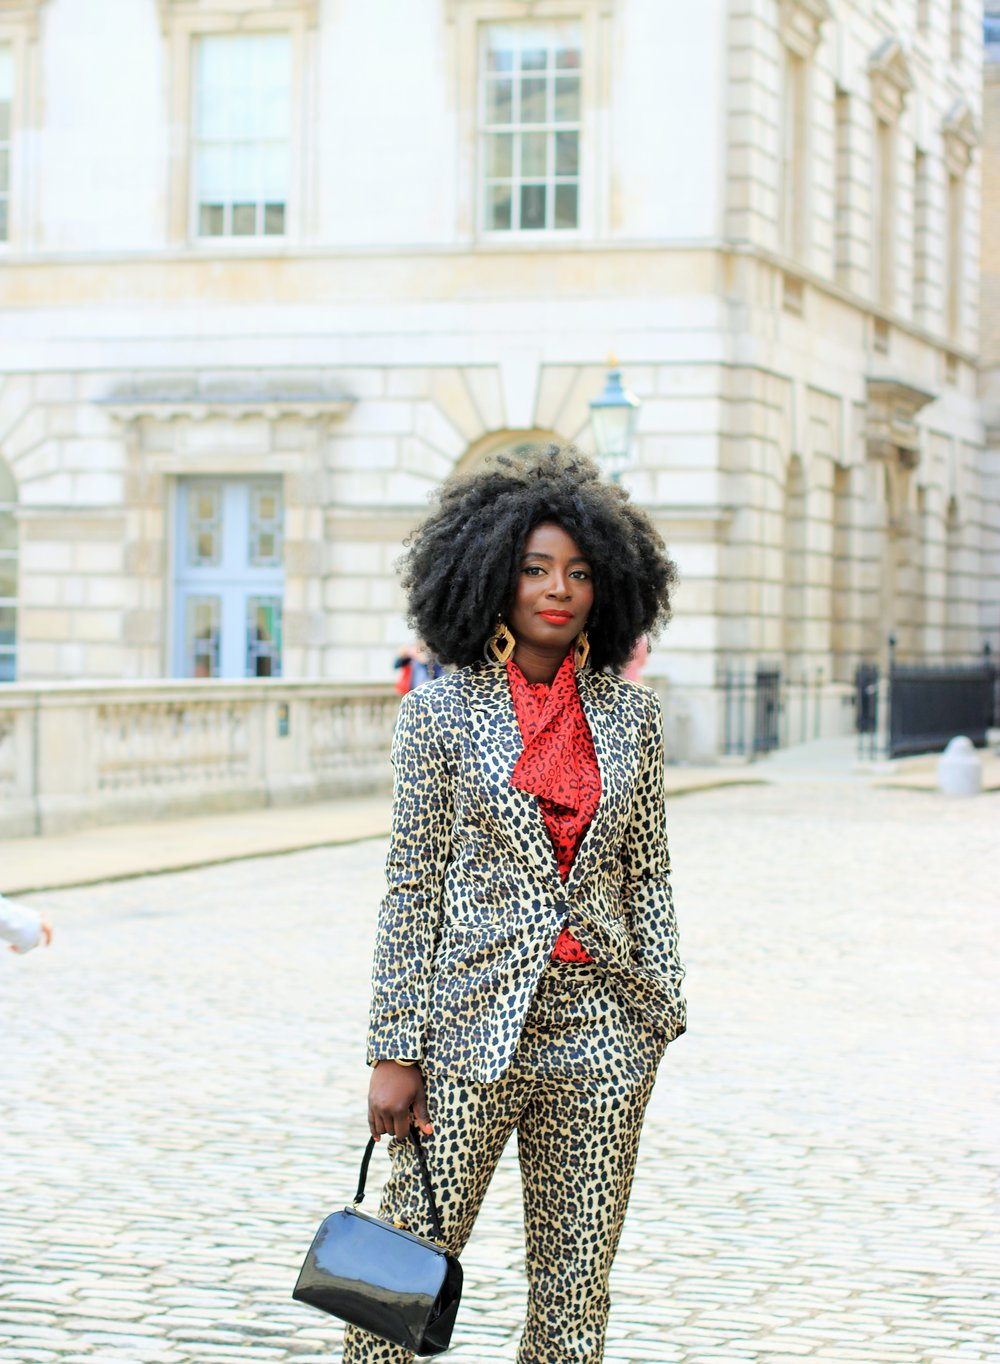 Leopard_Suit_Outfit_Ideas